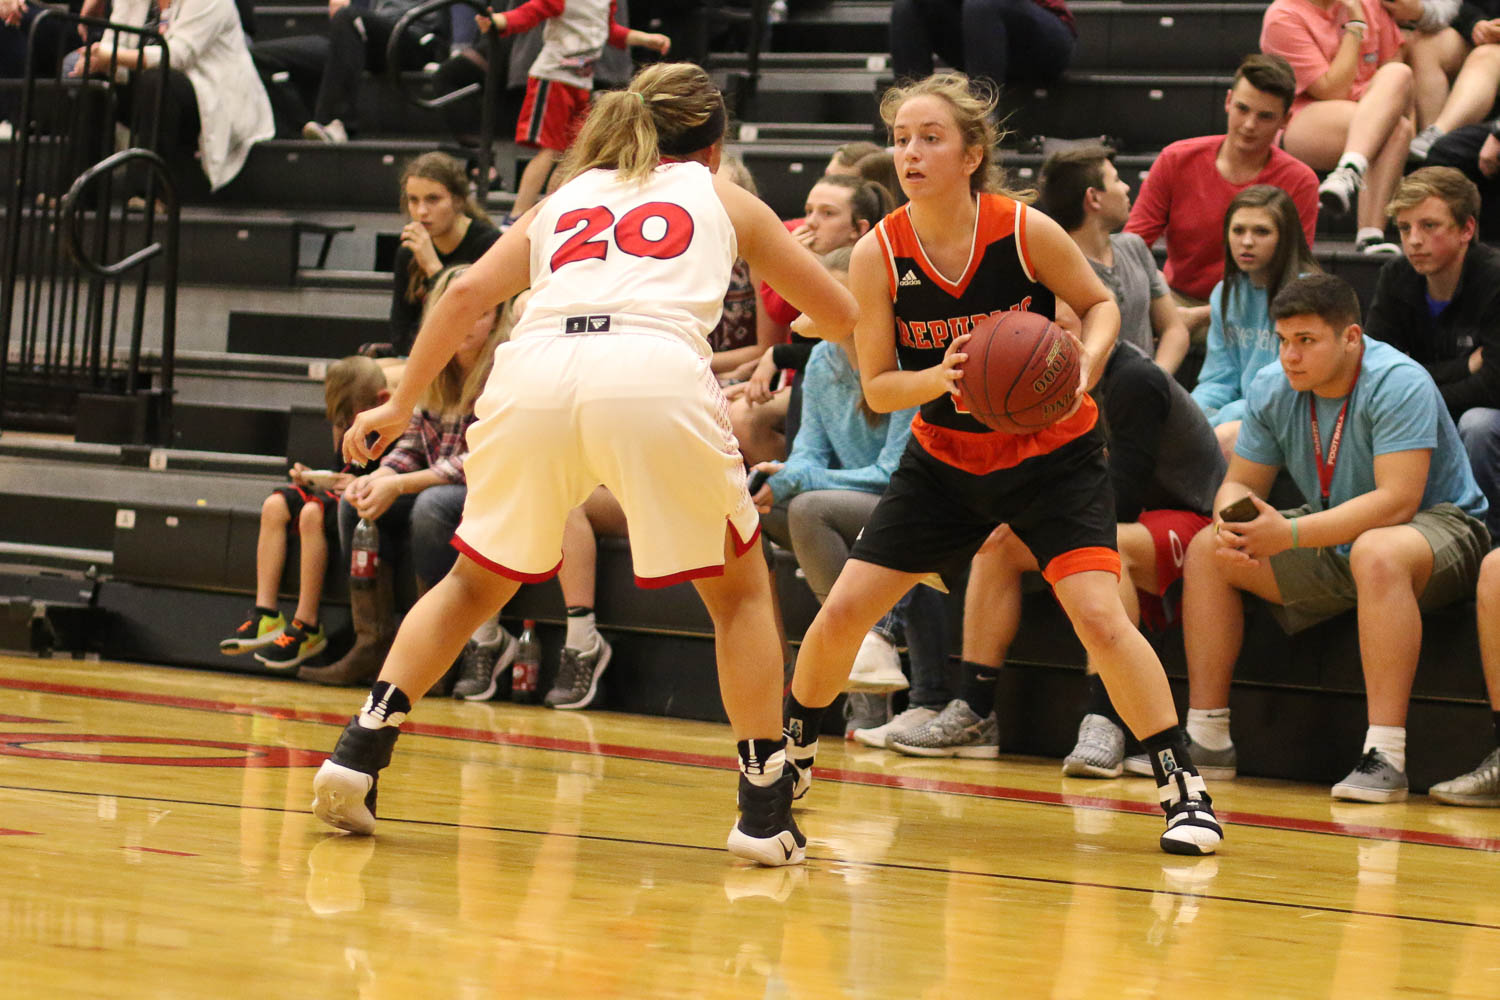 Photos: Varsity Girls Basketball Vs Ozark